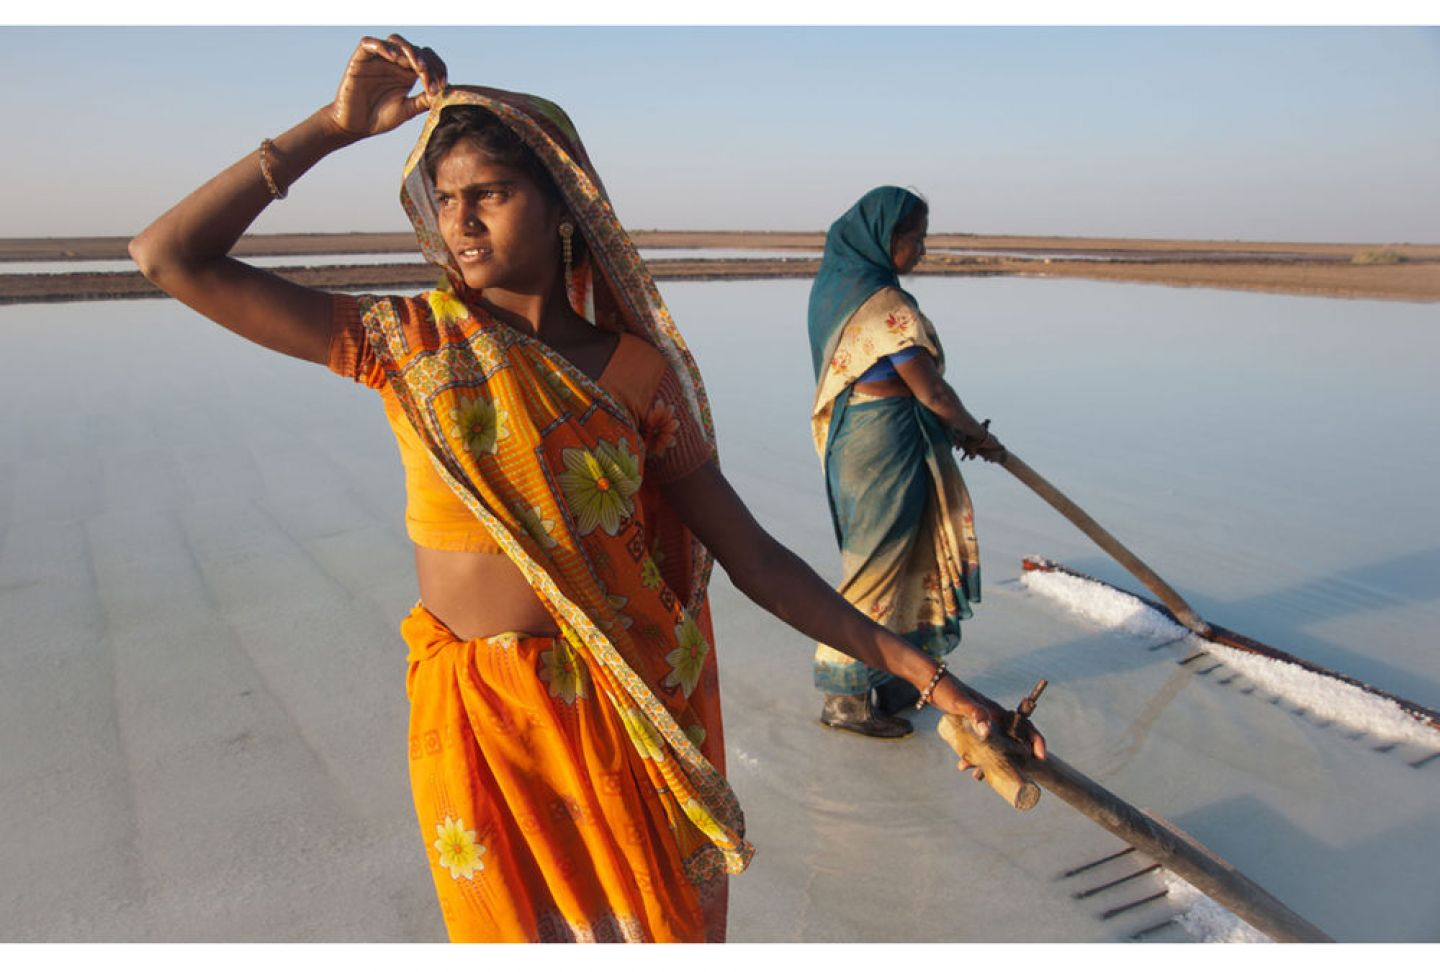 "Photo title is ""Ripple Effect Image"" - shows two (possibly Indian) women in saris standing on sand in ankle-deep water, and using tools that look like large rakes"